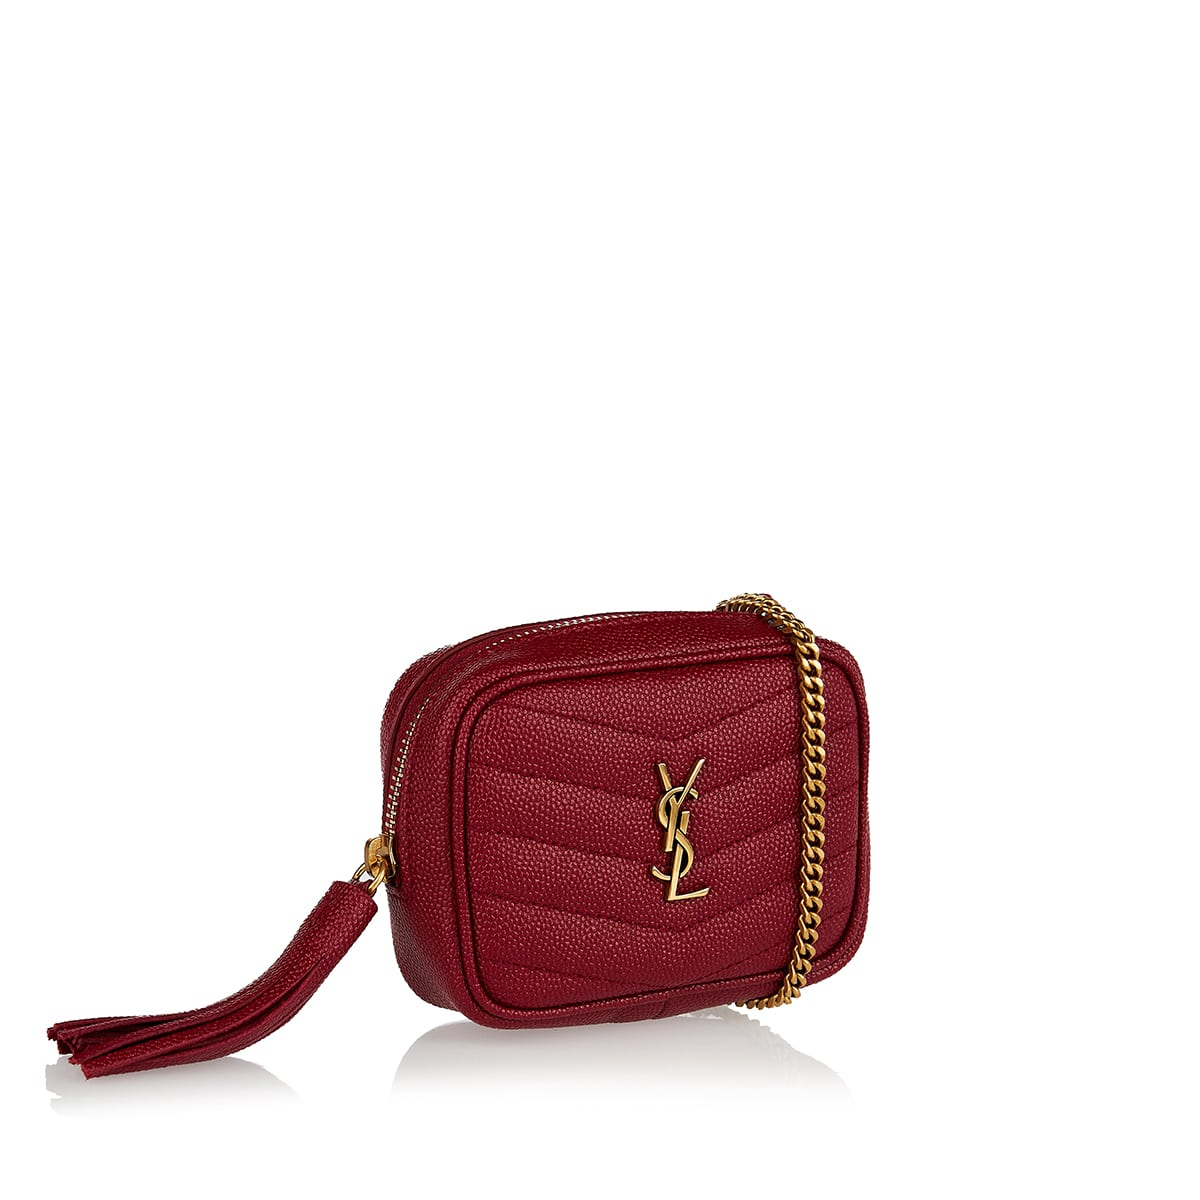 Lou baby quilted leather bag